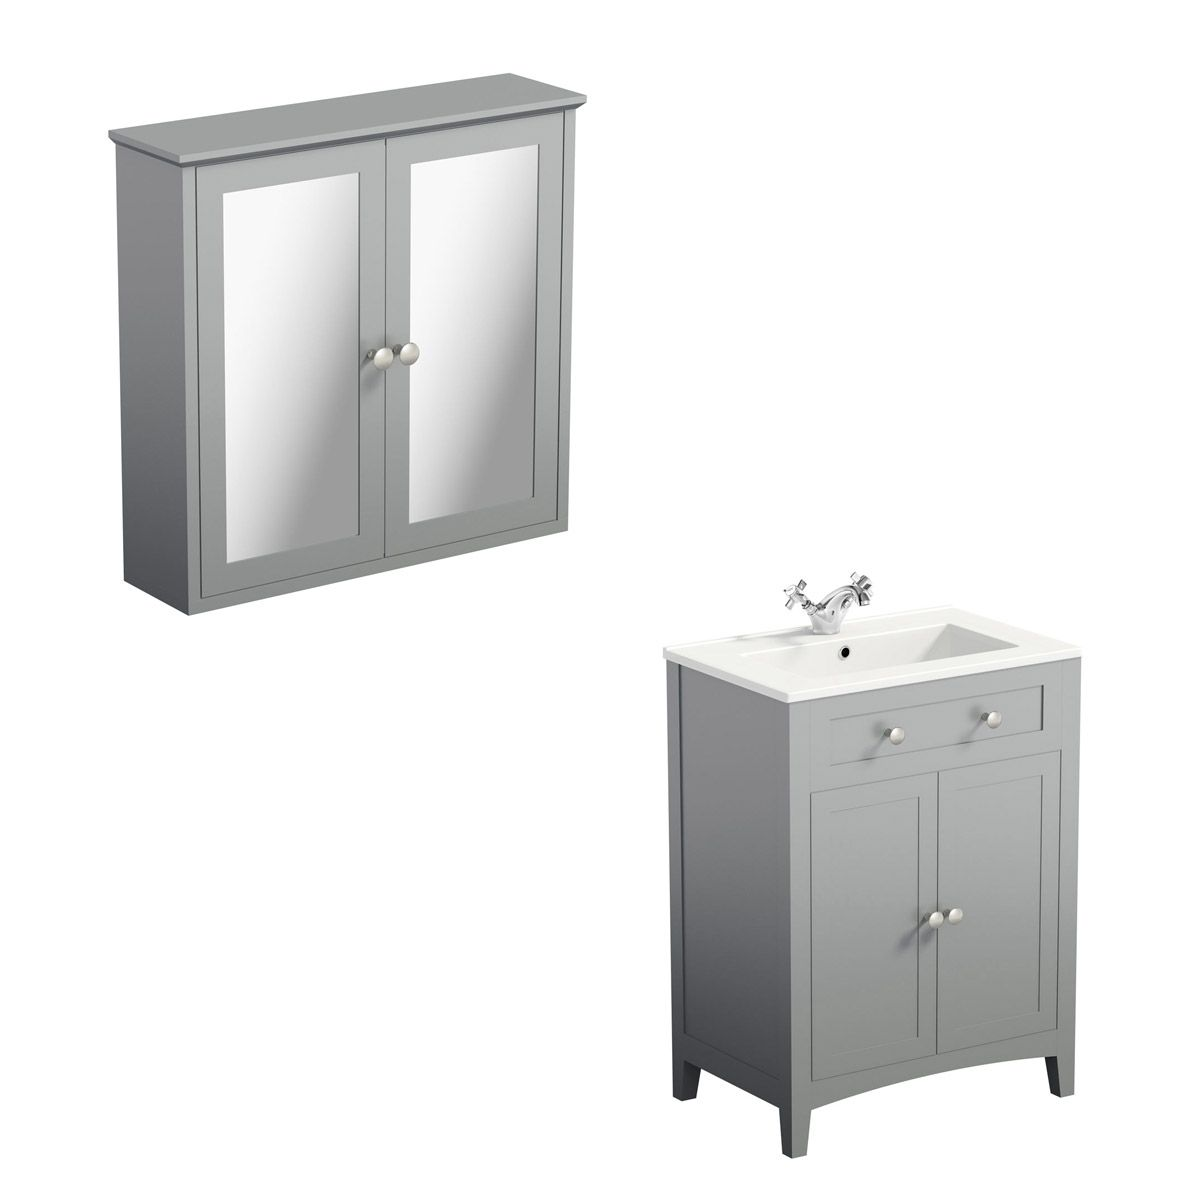 Bathroom Cabinets 700mm the bath co. camberley grey vanity unit 600mm and mirror cabinet